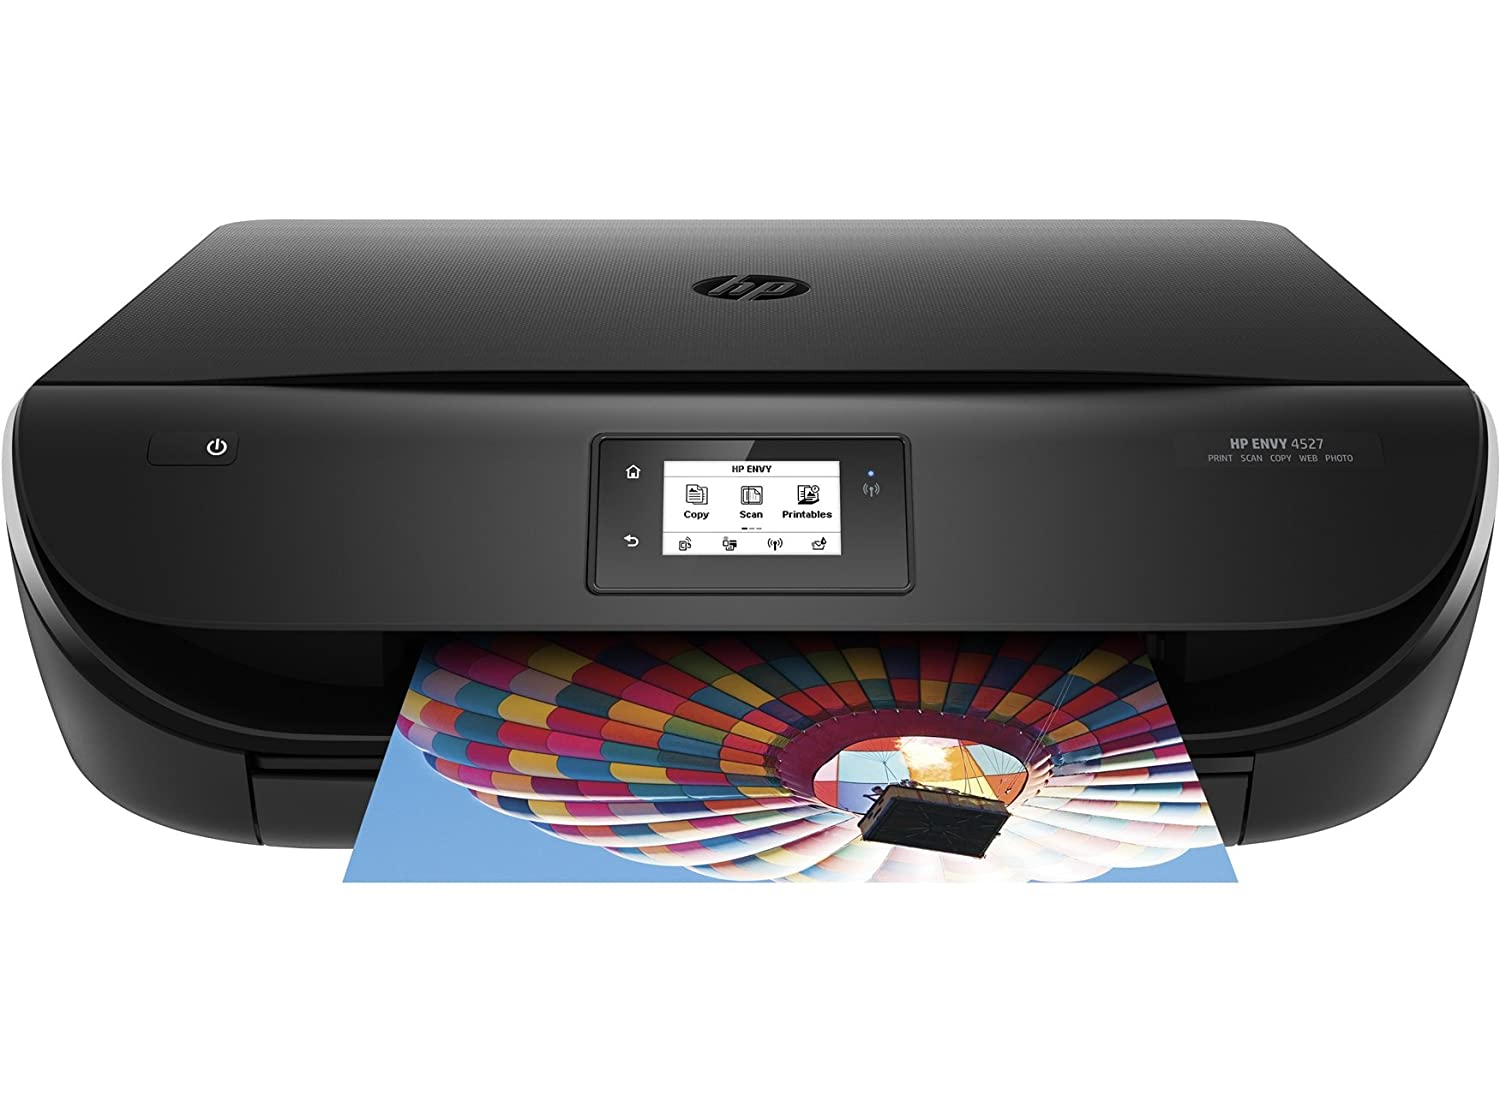 HP Envy All in One Impresora multifunción color de tinta WIFI